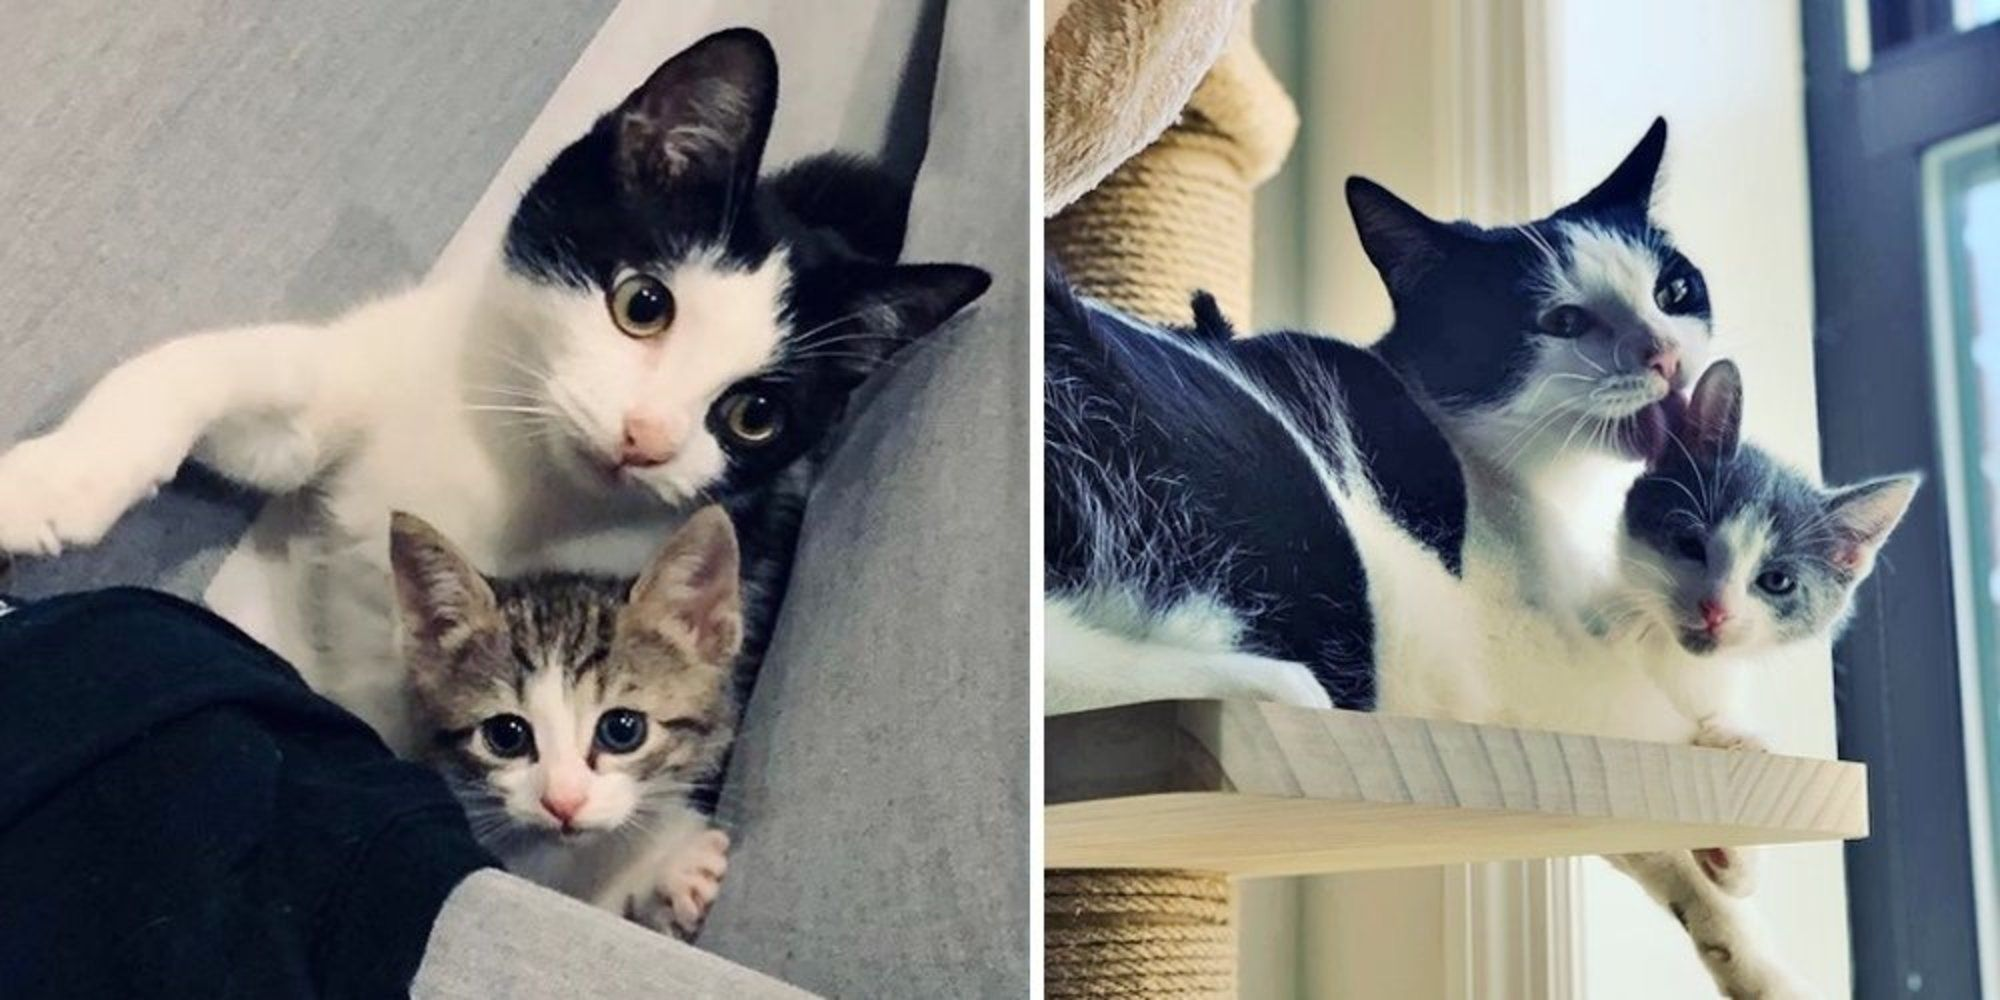 Woman Took Orphaned Kitten Home to Foster But the Tuxedo